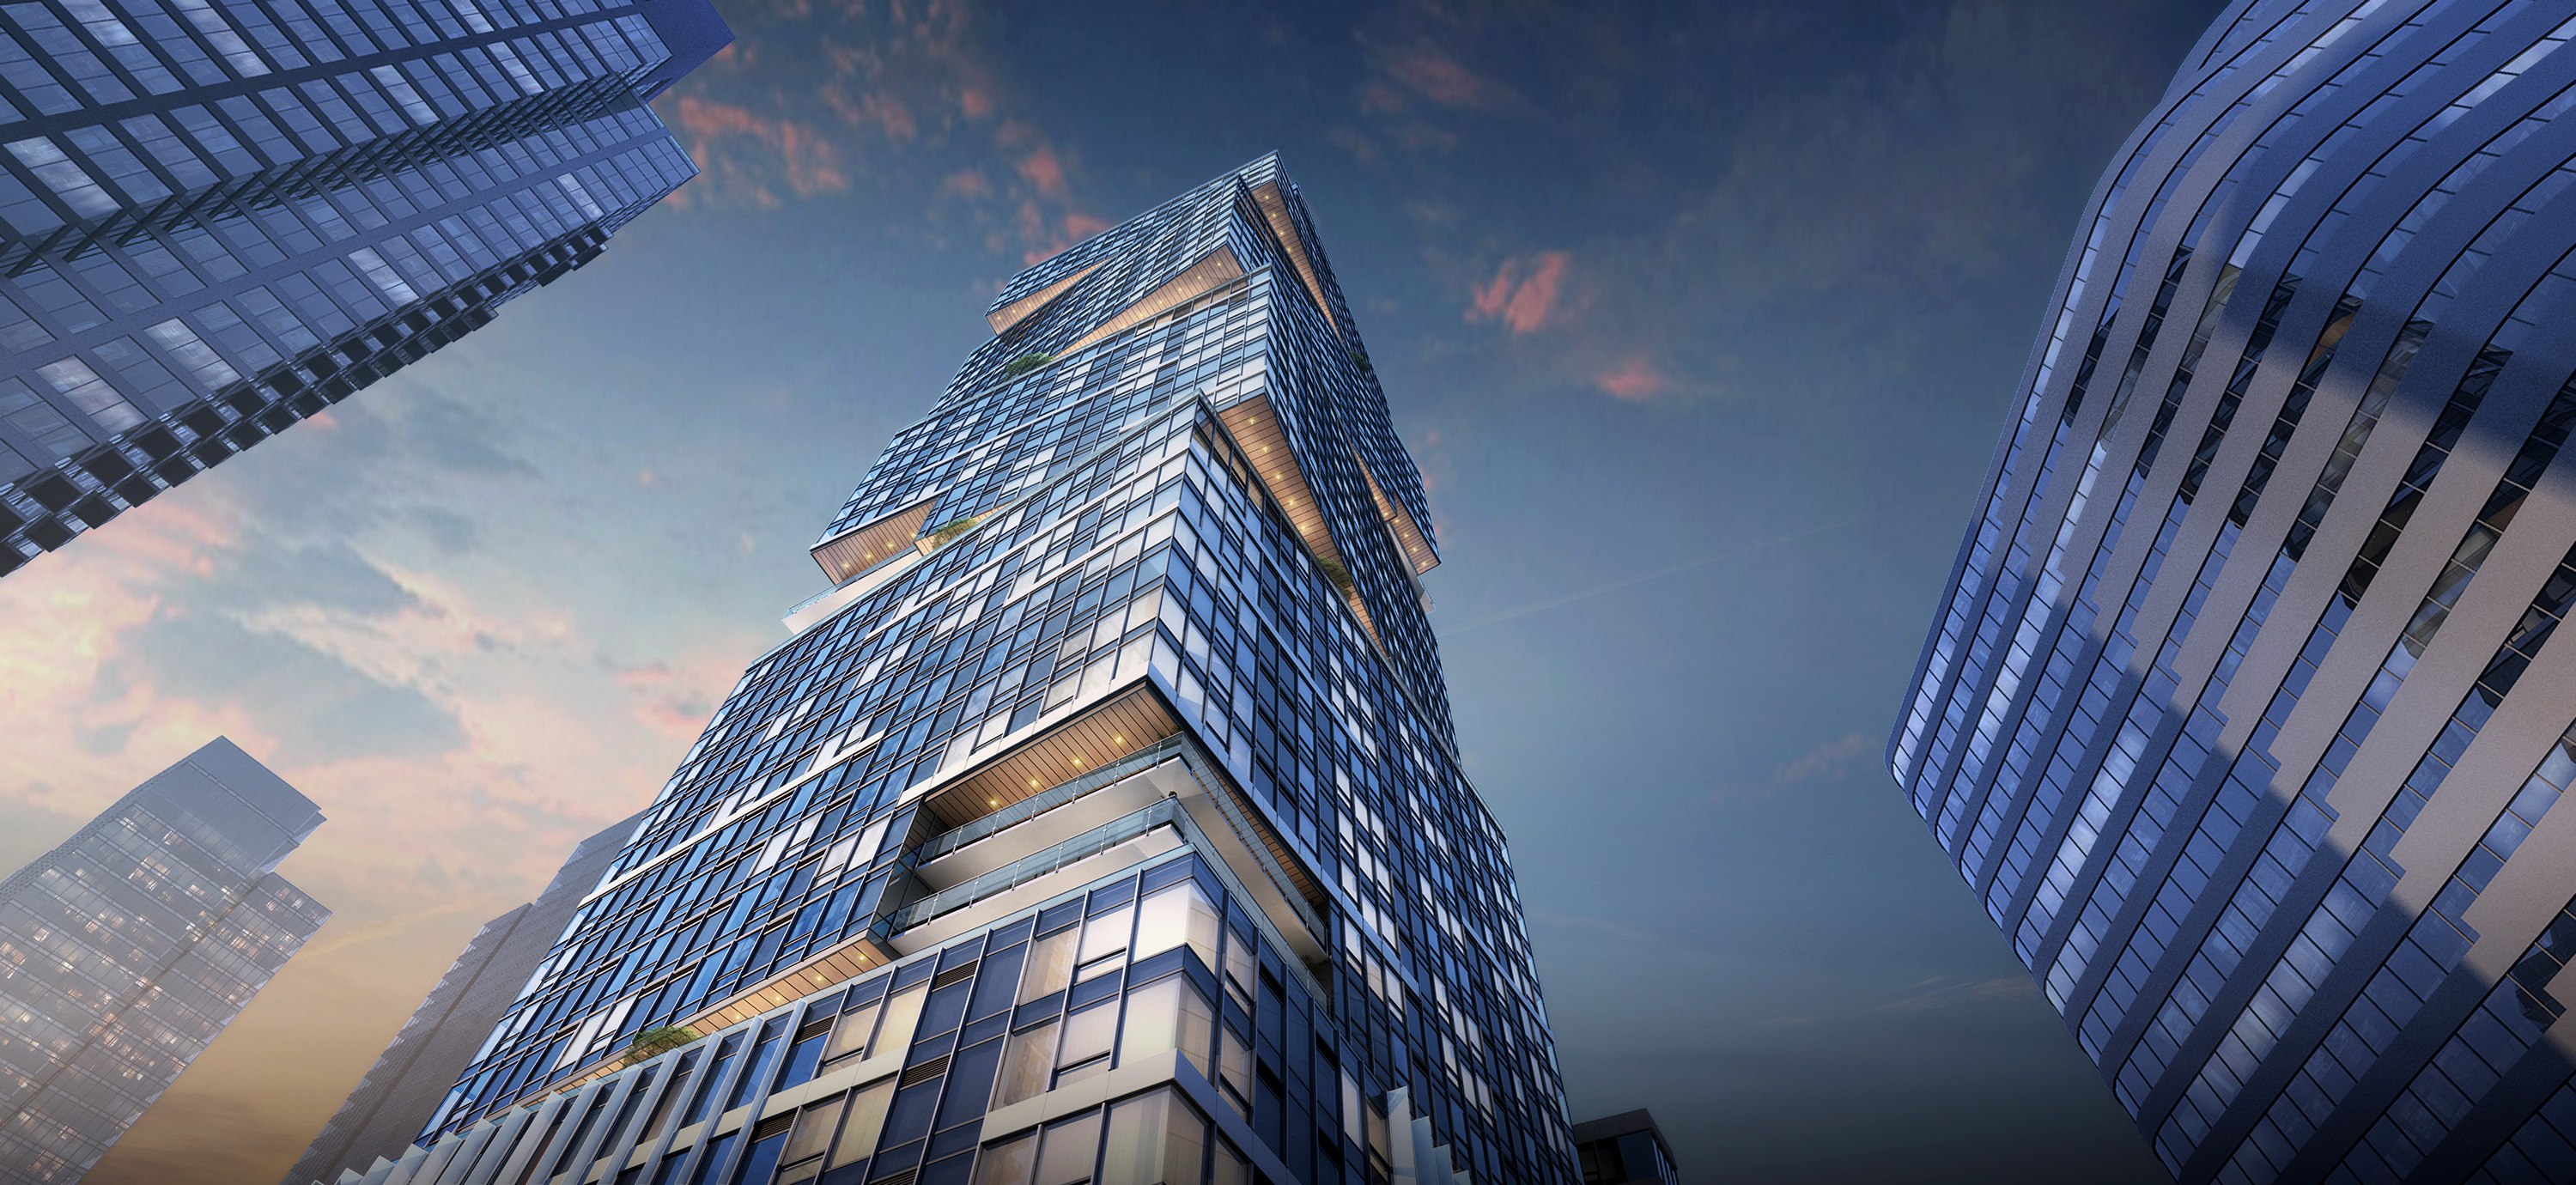 Realogics Sotheby S Inernational Realty Amp Burrard Group To Showcase Nexus Downtown Seattle S